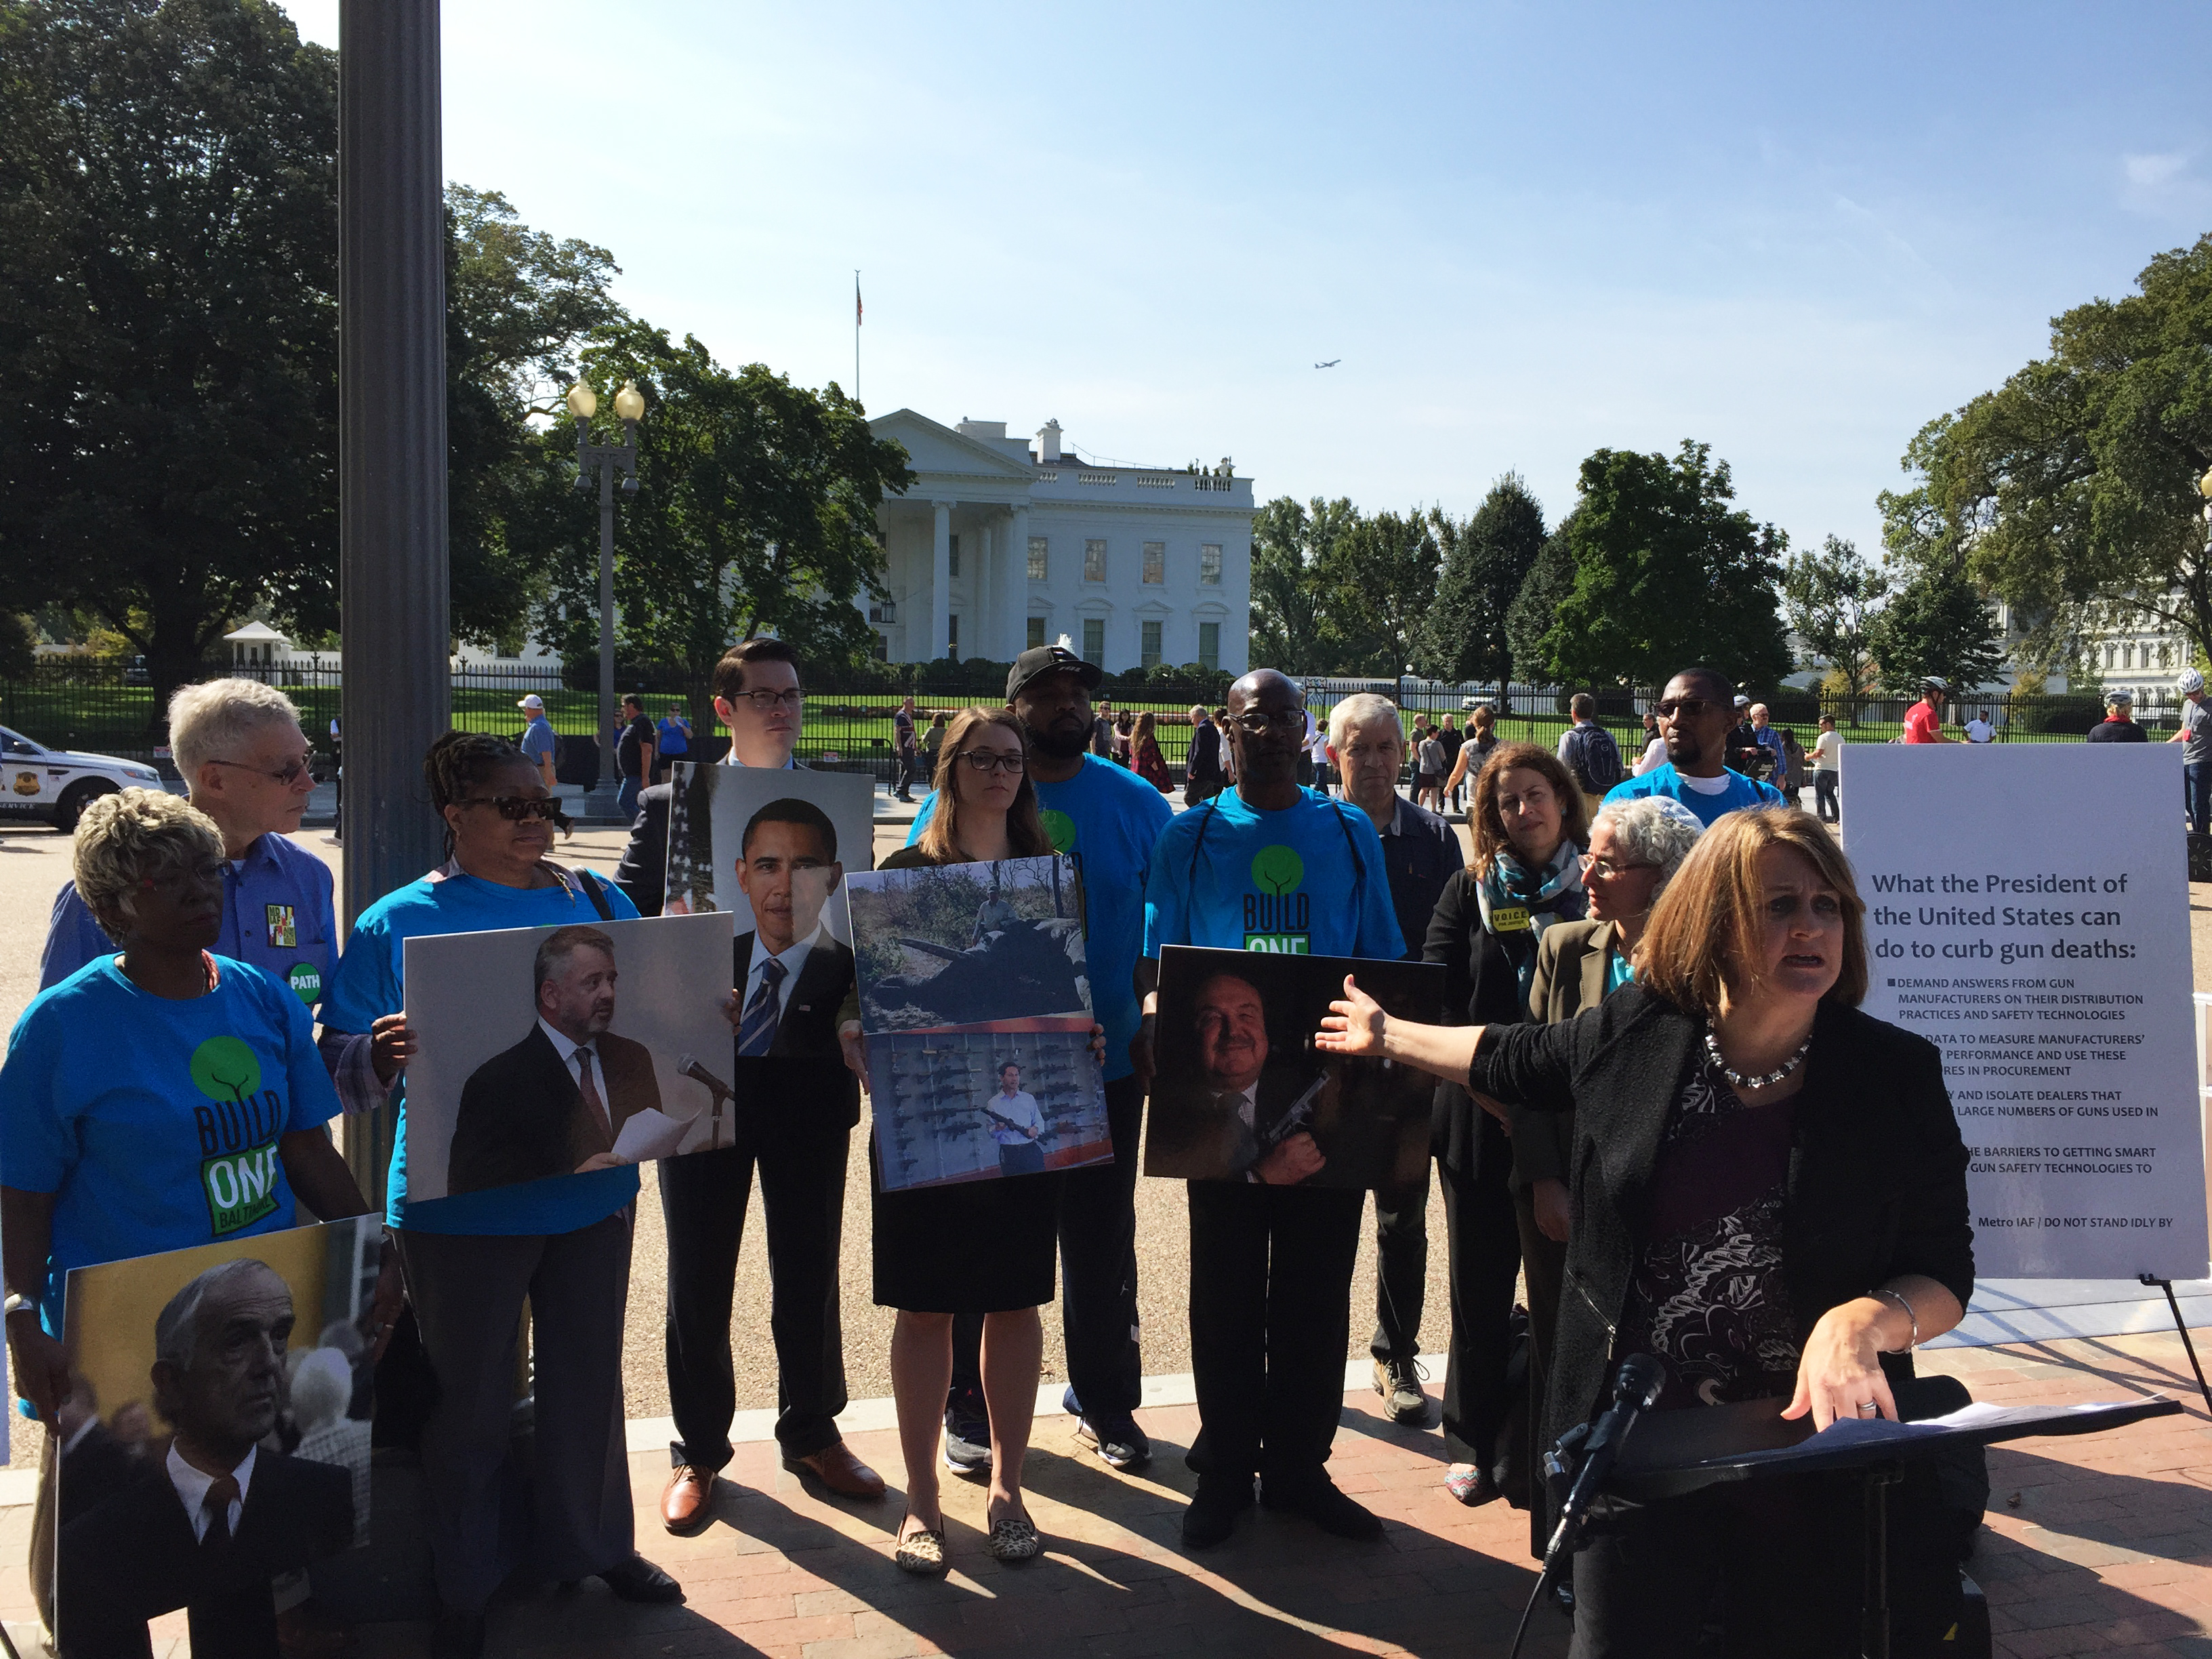 DiAne Boese was accidentally shot in the face by another child when she was three-years-old. She joined a group across the street from the White House Thursday, calling on the president to pressure gun manufacturers for more smart gun technology. (VO...